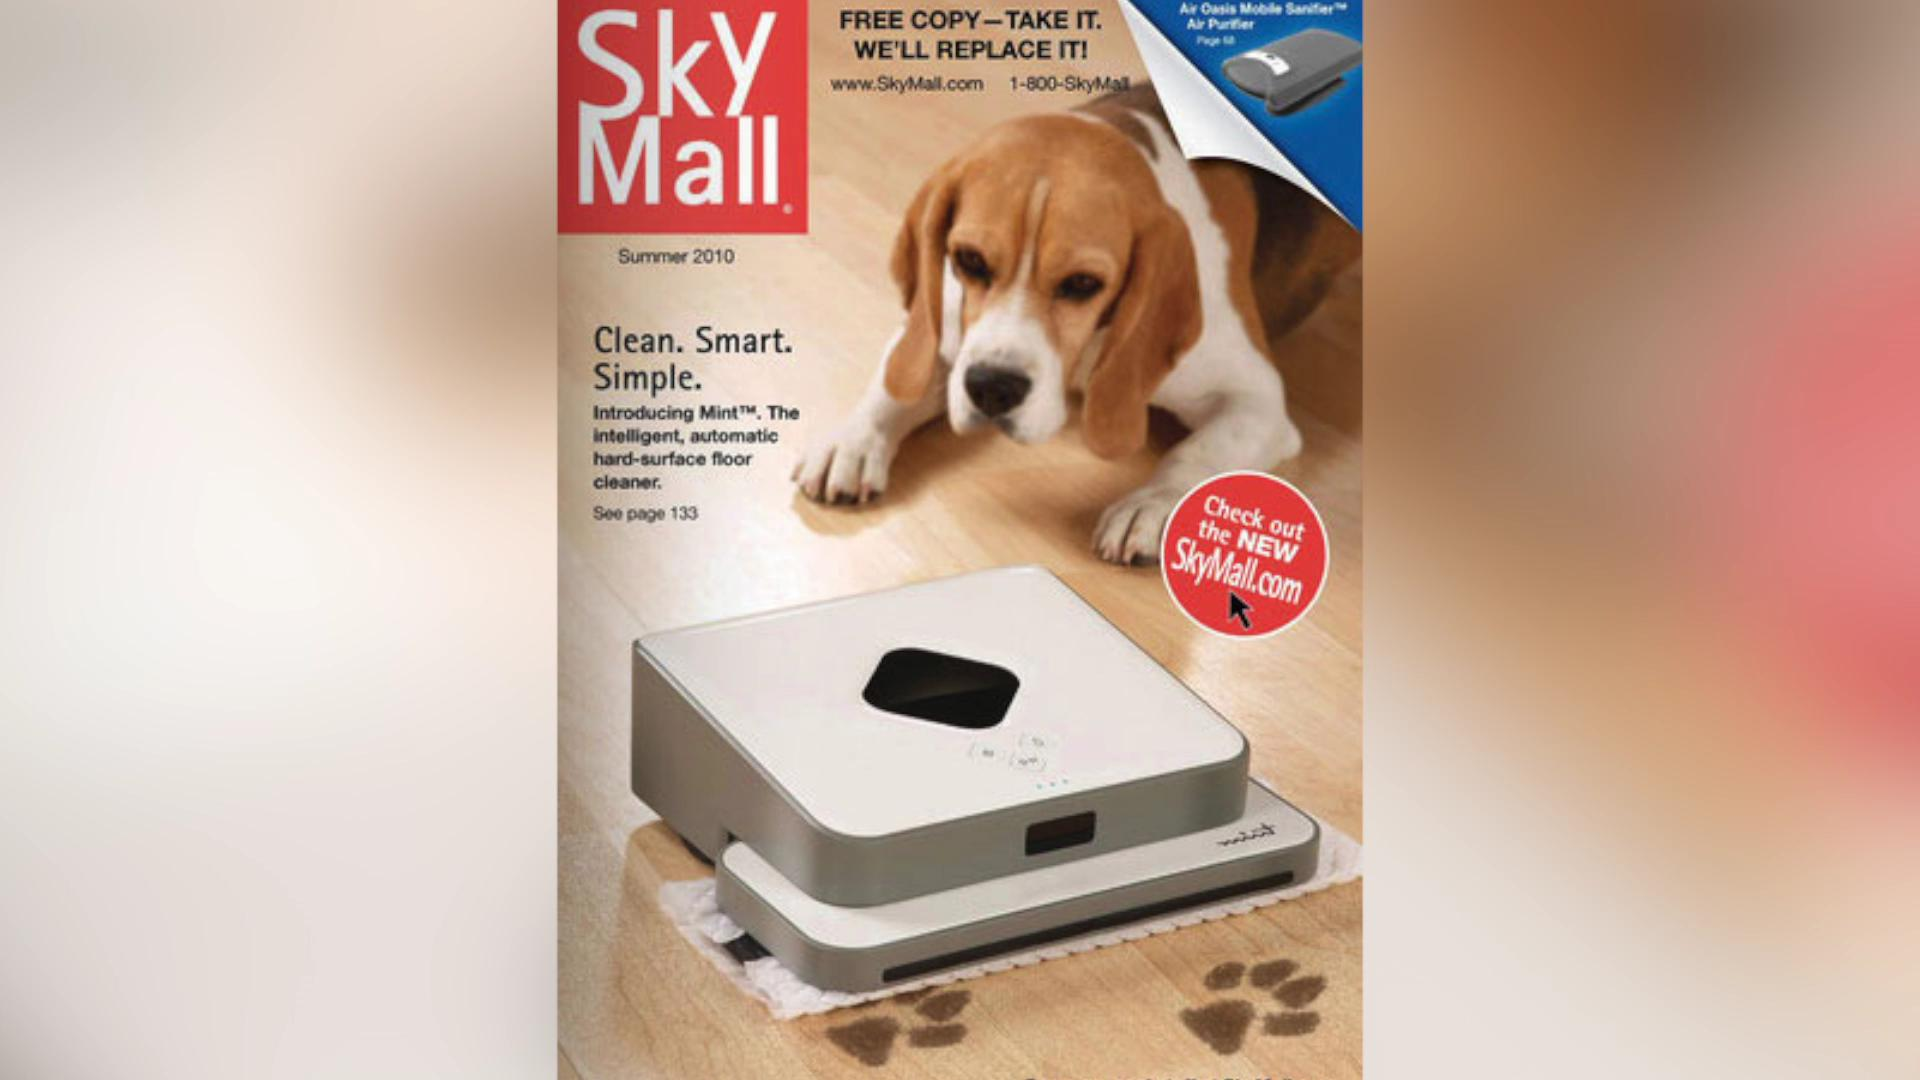 SkyMall is returning online and on airplanes